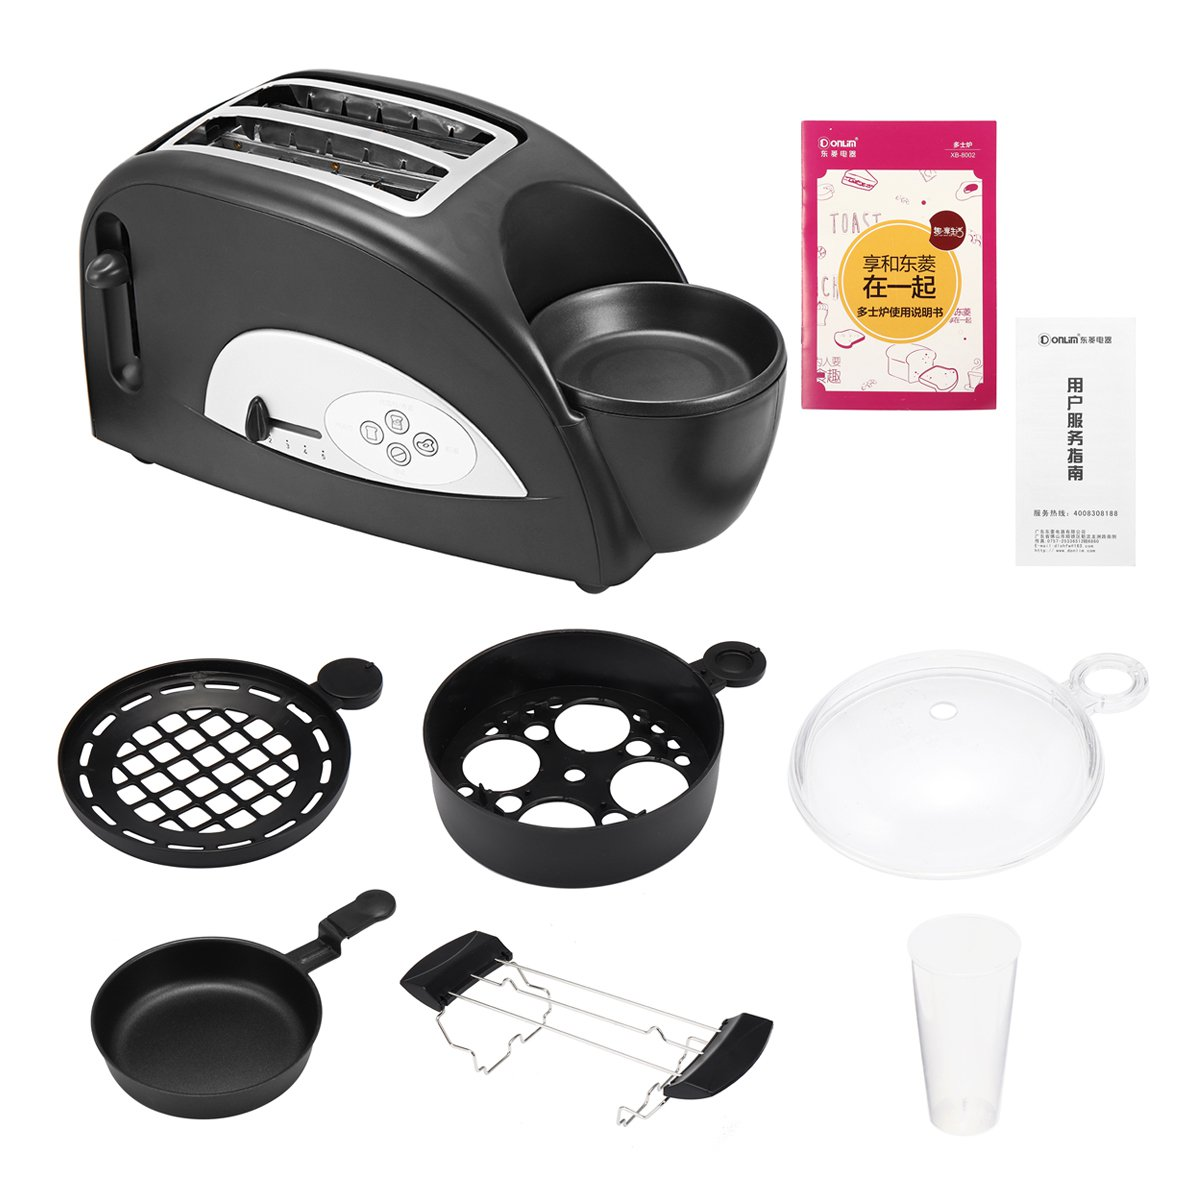 Multifunctional 2 in 1 Stainless Steel 2 Slices Bread Toaster Electric Eggs Cooker Breakfast Maker Household Oven Machine 1200WMultifunctional 2 in 1 Stainless Steel 2 Slices Bread Toaster Electric Eggs Cooker Breakfast Maker Household Oven Machine 1200W